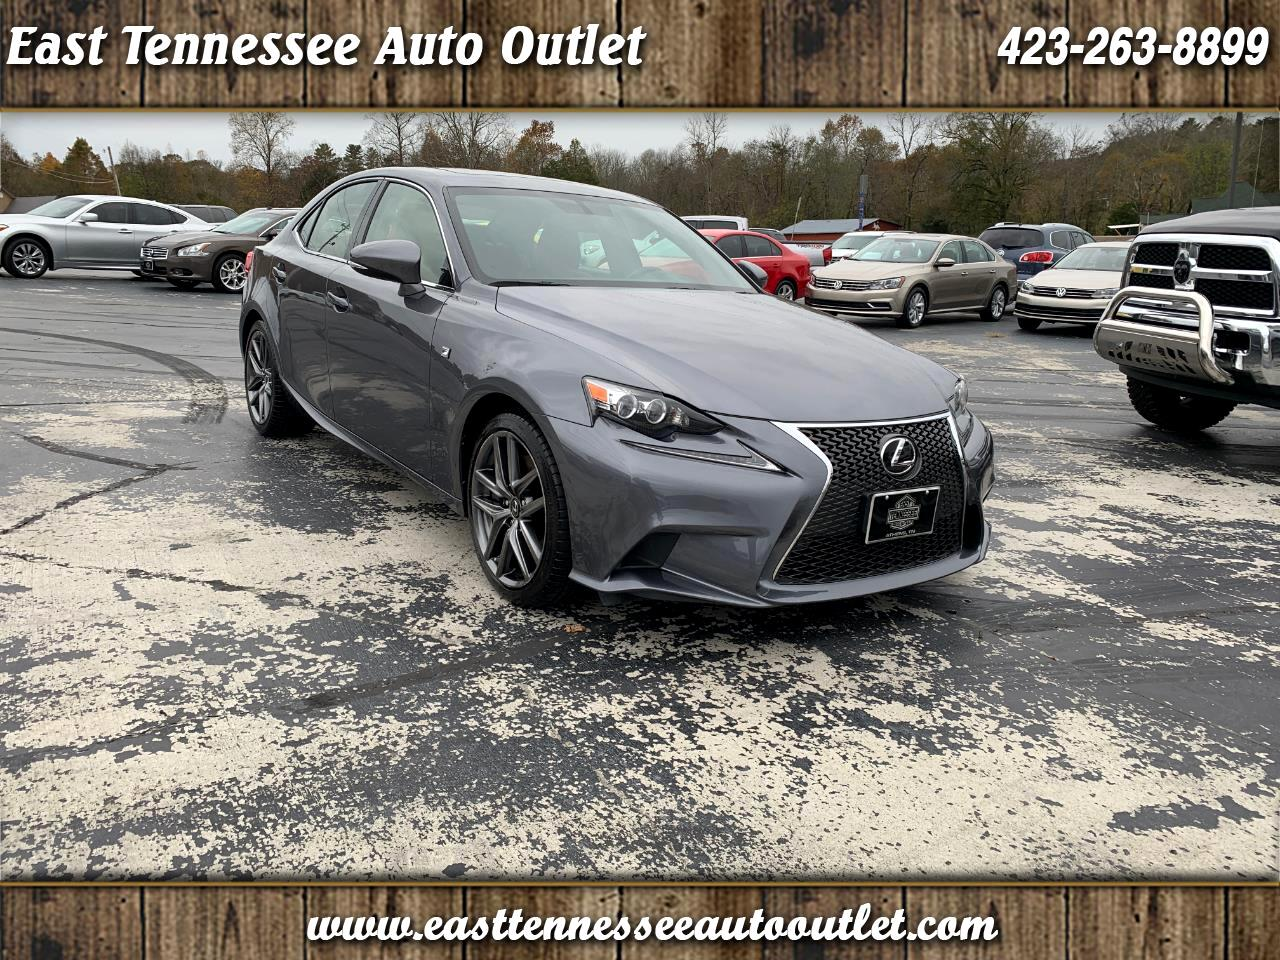 2016 Lexus IS 200t 4dr Sdn F Sport